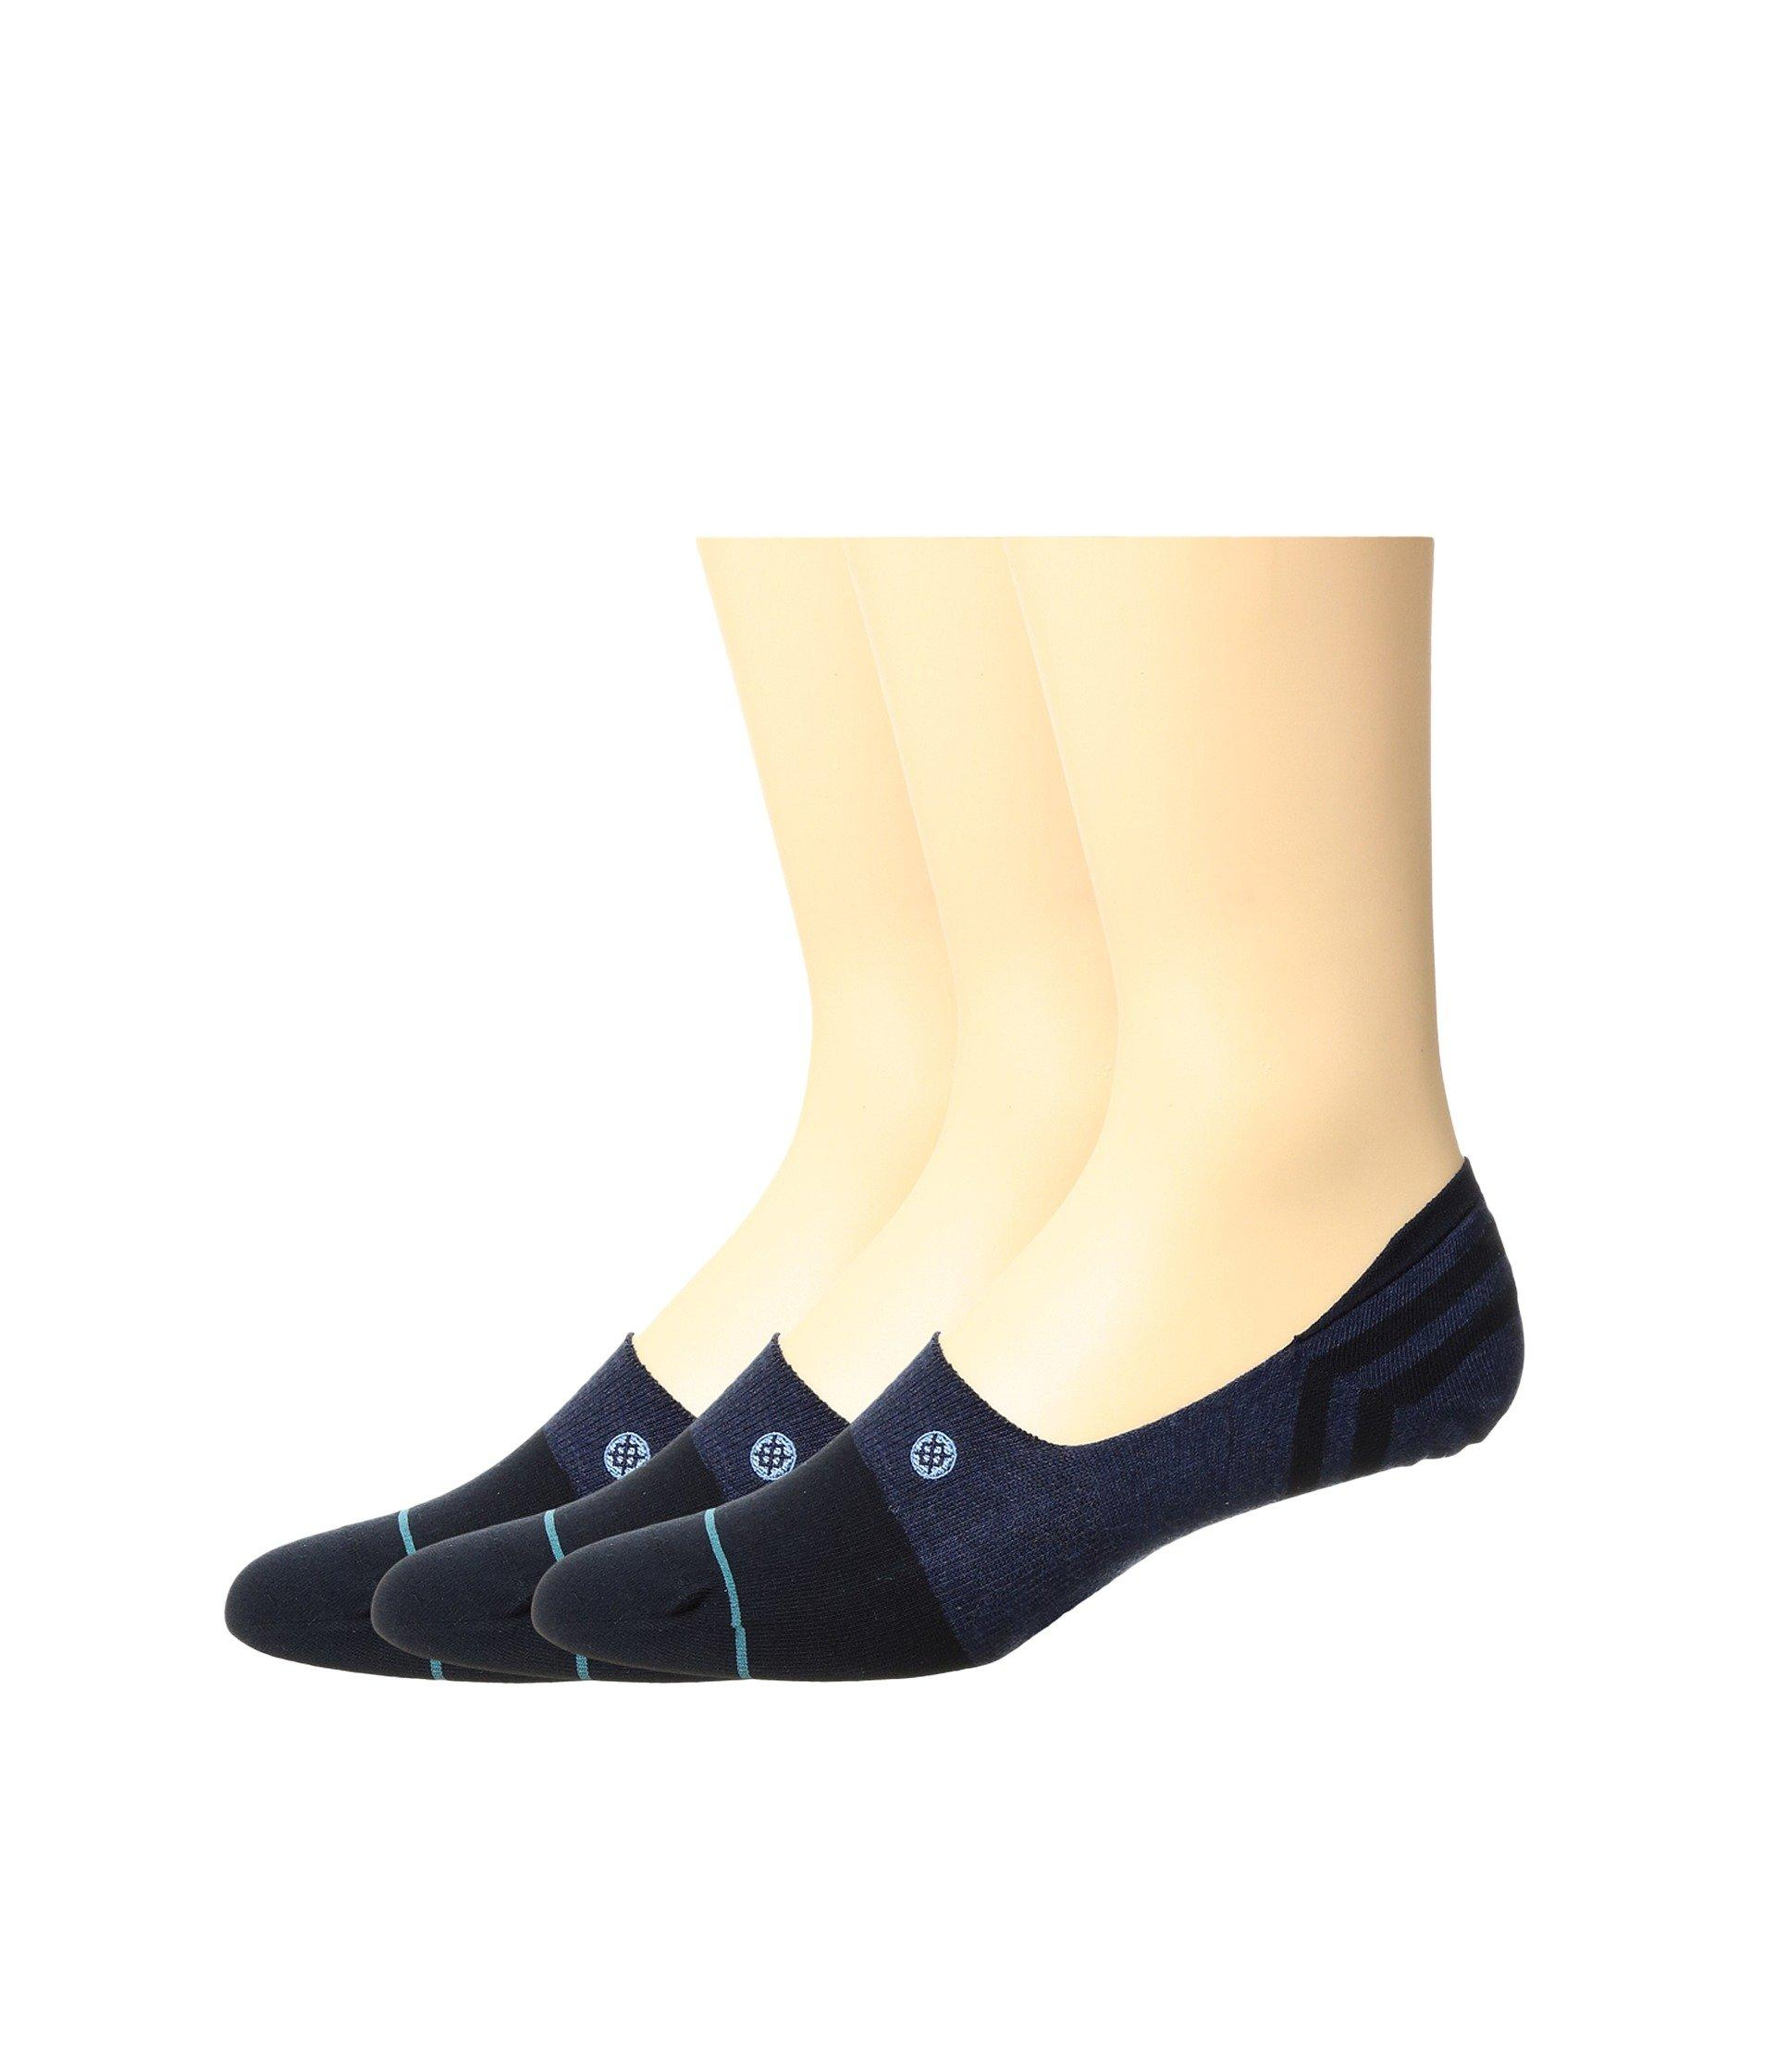 Stance Gamut 3-pack In Navy